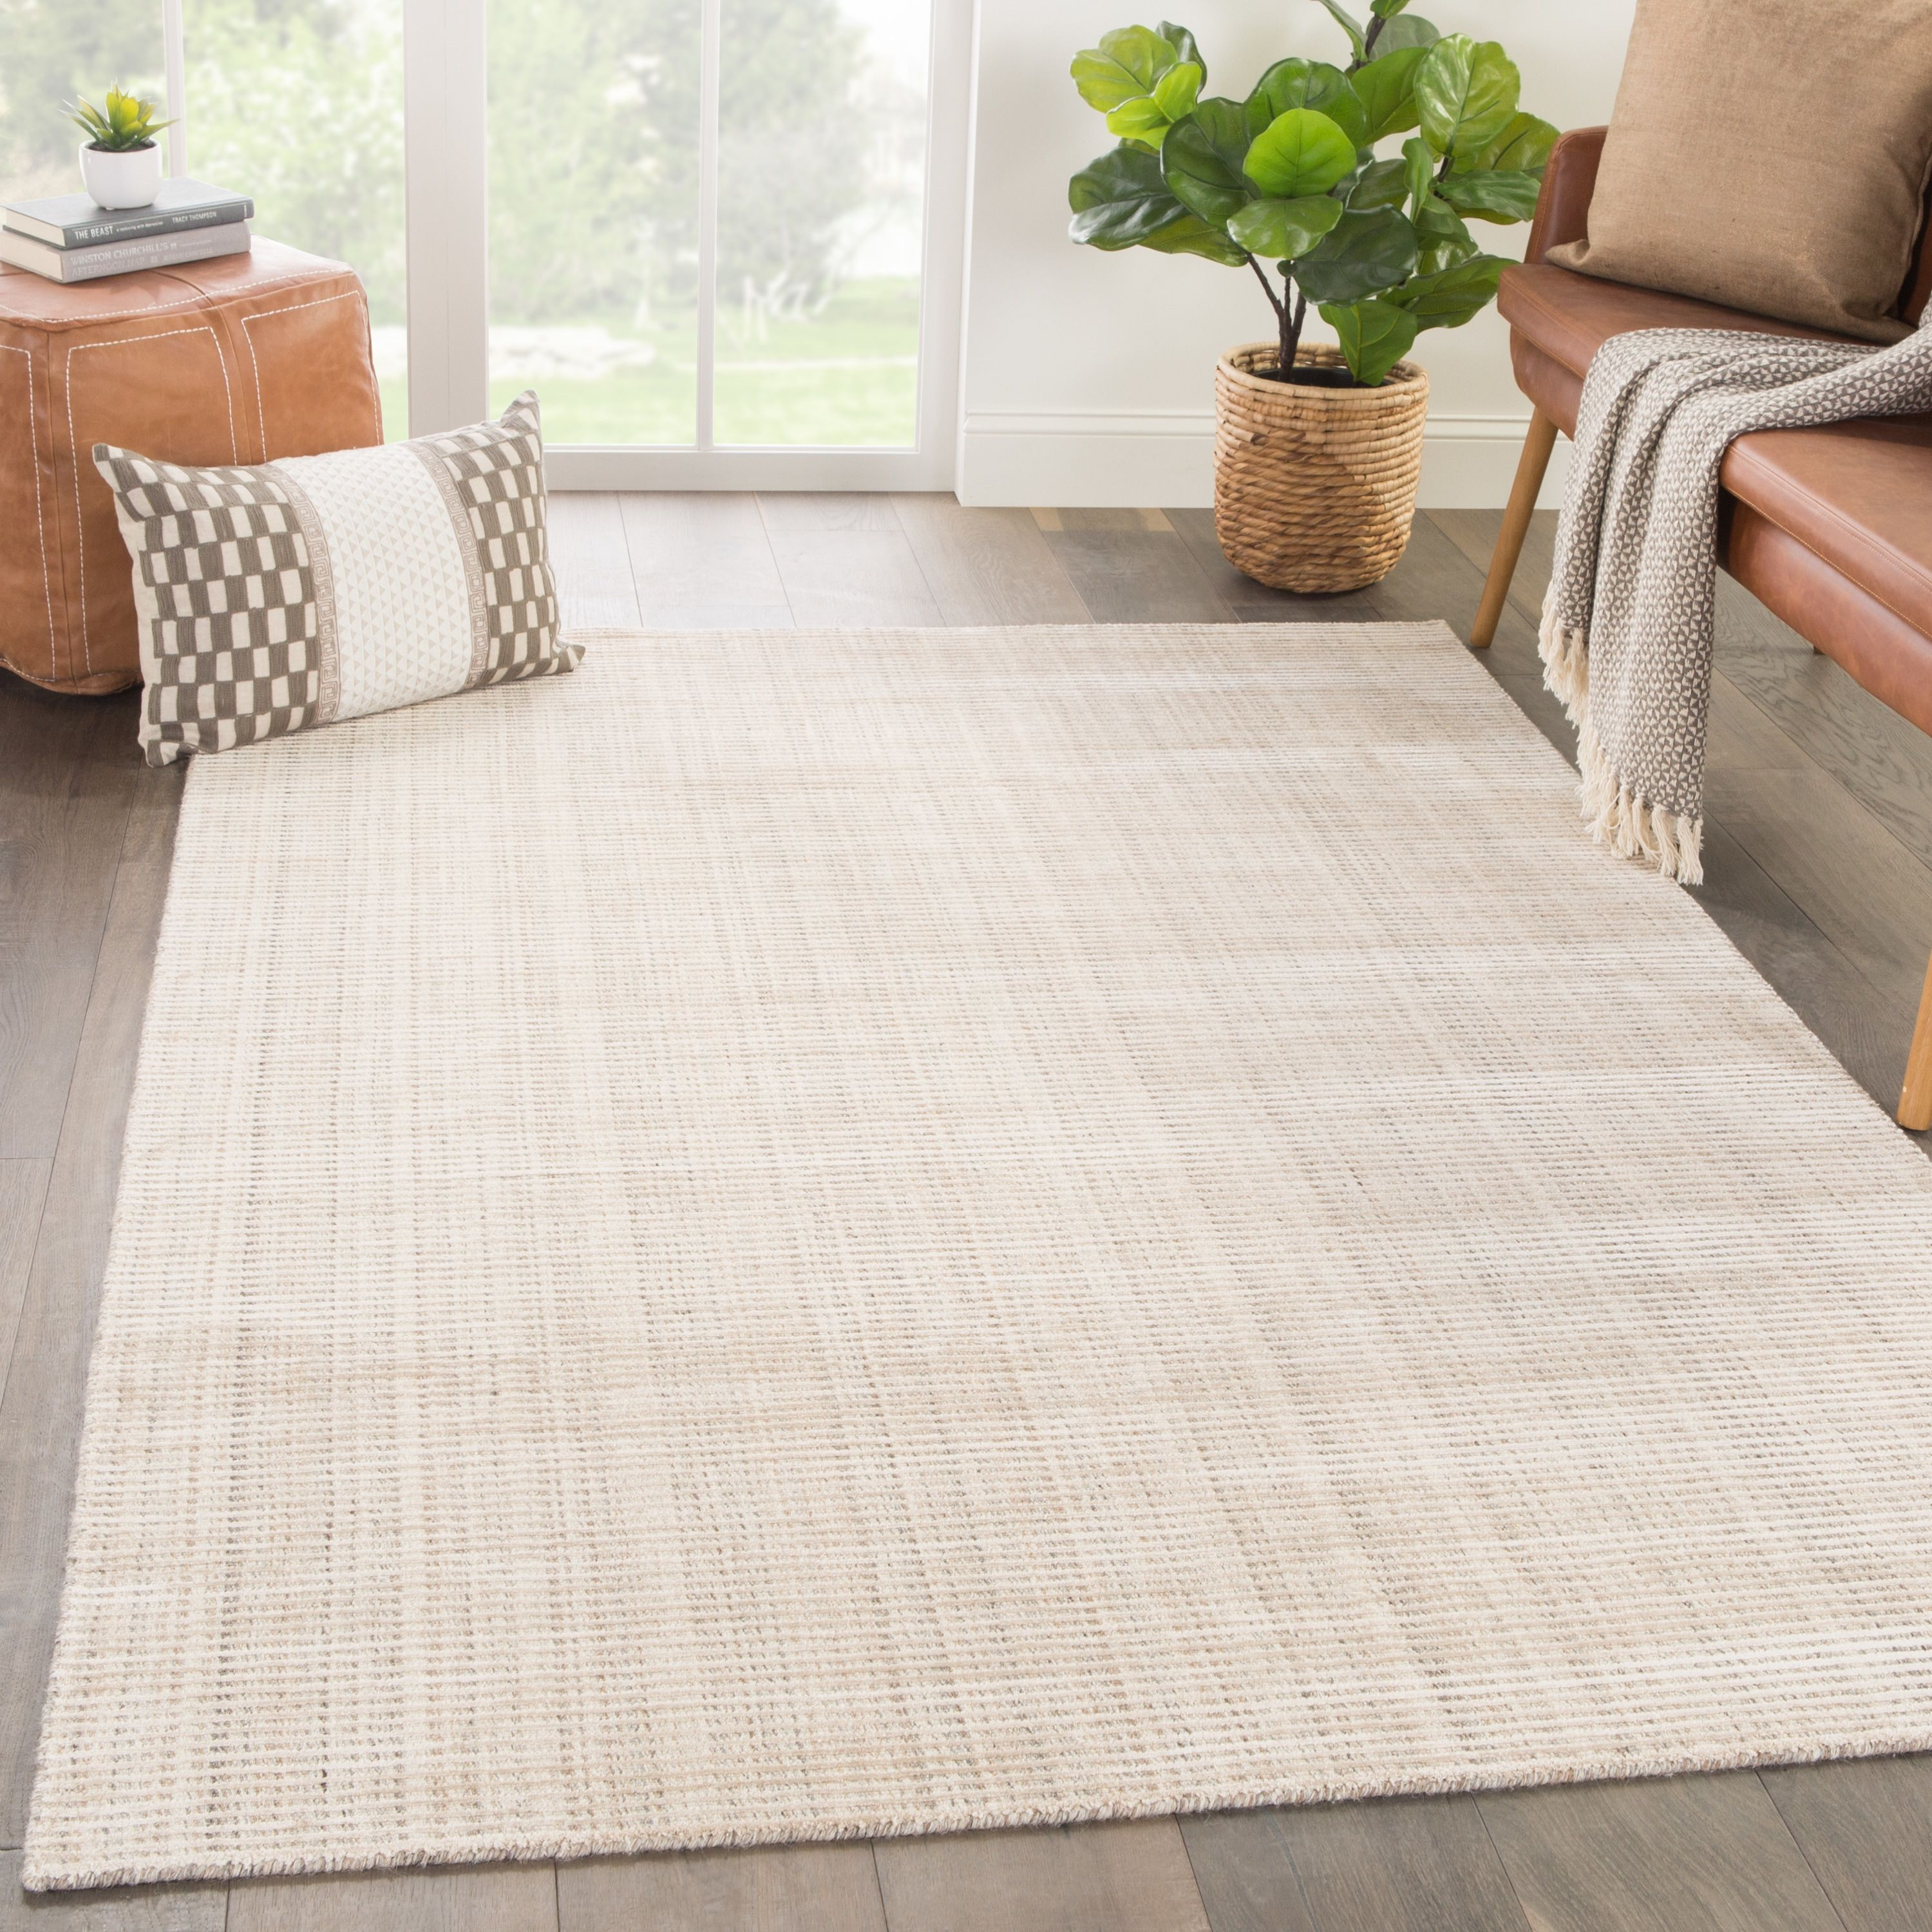 Phase Handmade Solid Ivory Beige Area Rug 10 X 14 10 X14